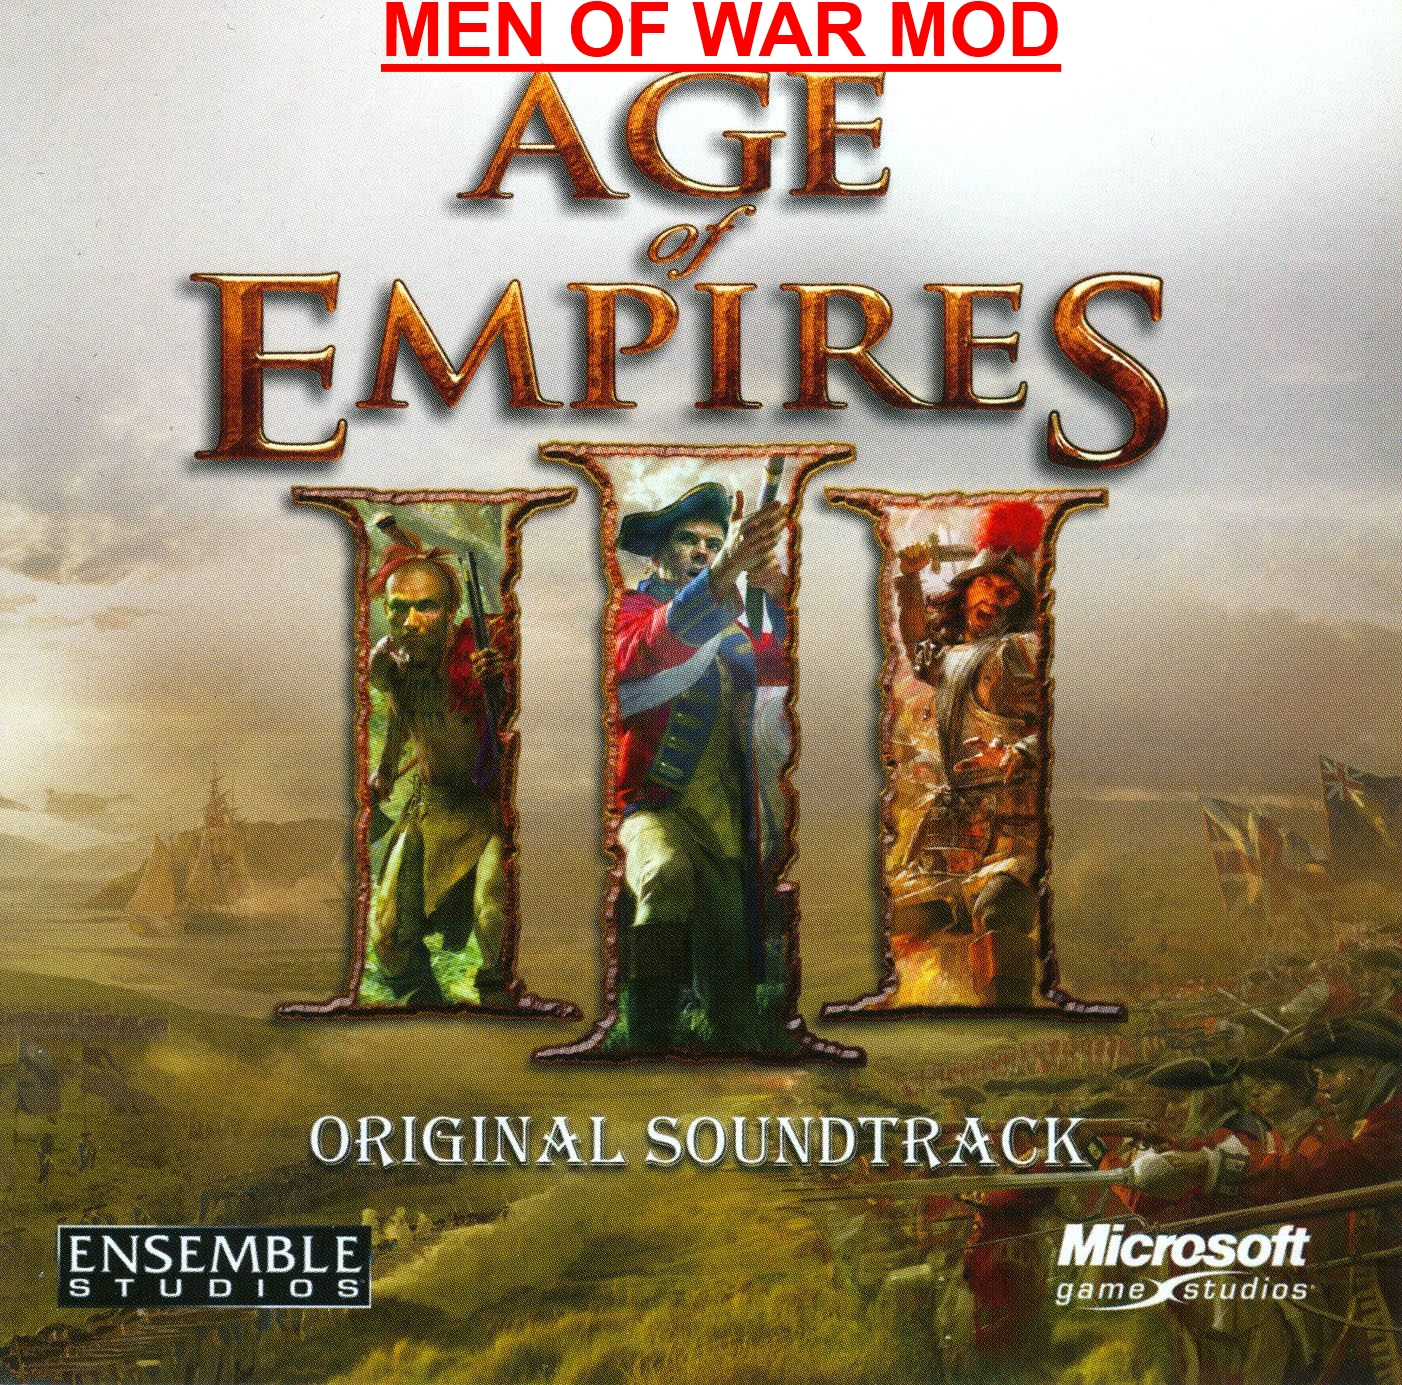 Age of empires 3 free download complete dlc [gd] | yasir252.